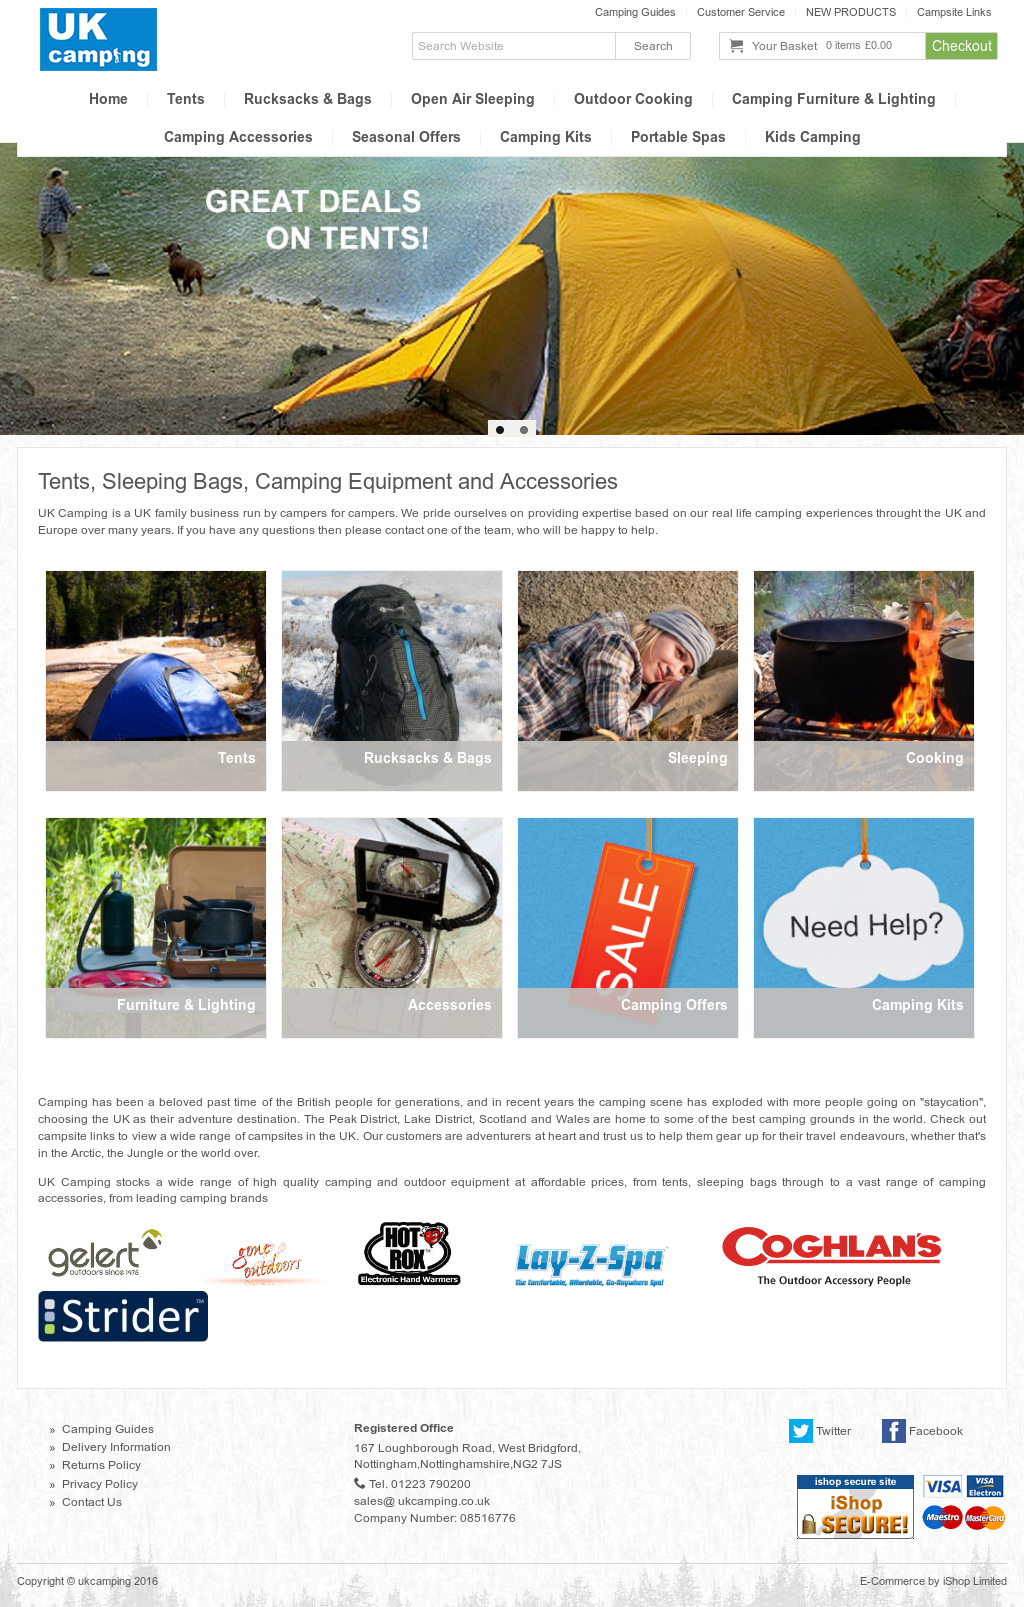 Uk Camping Competitors, Revenue and Employees - Owler Company Profile